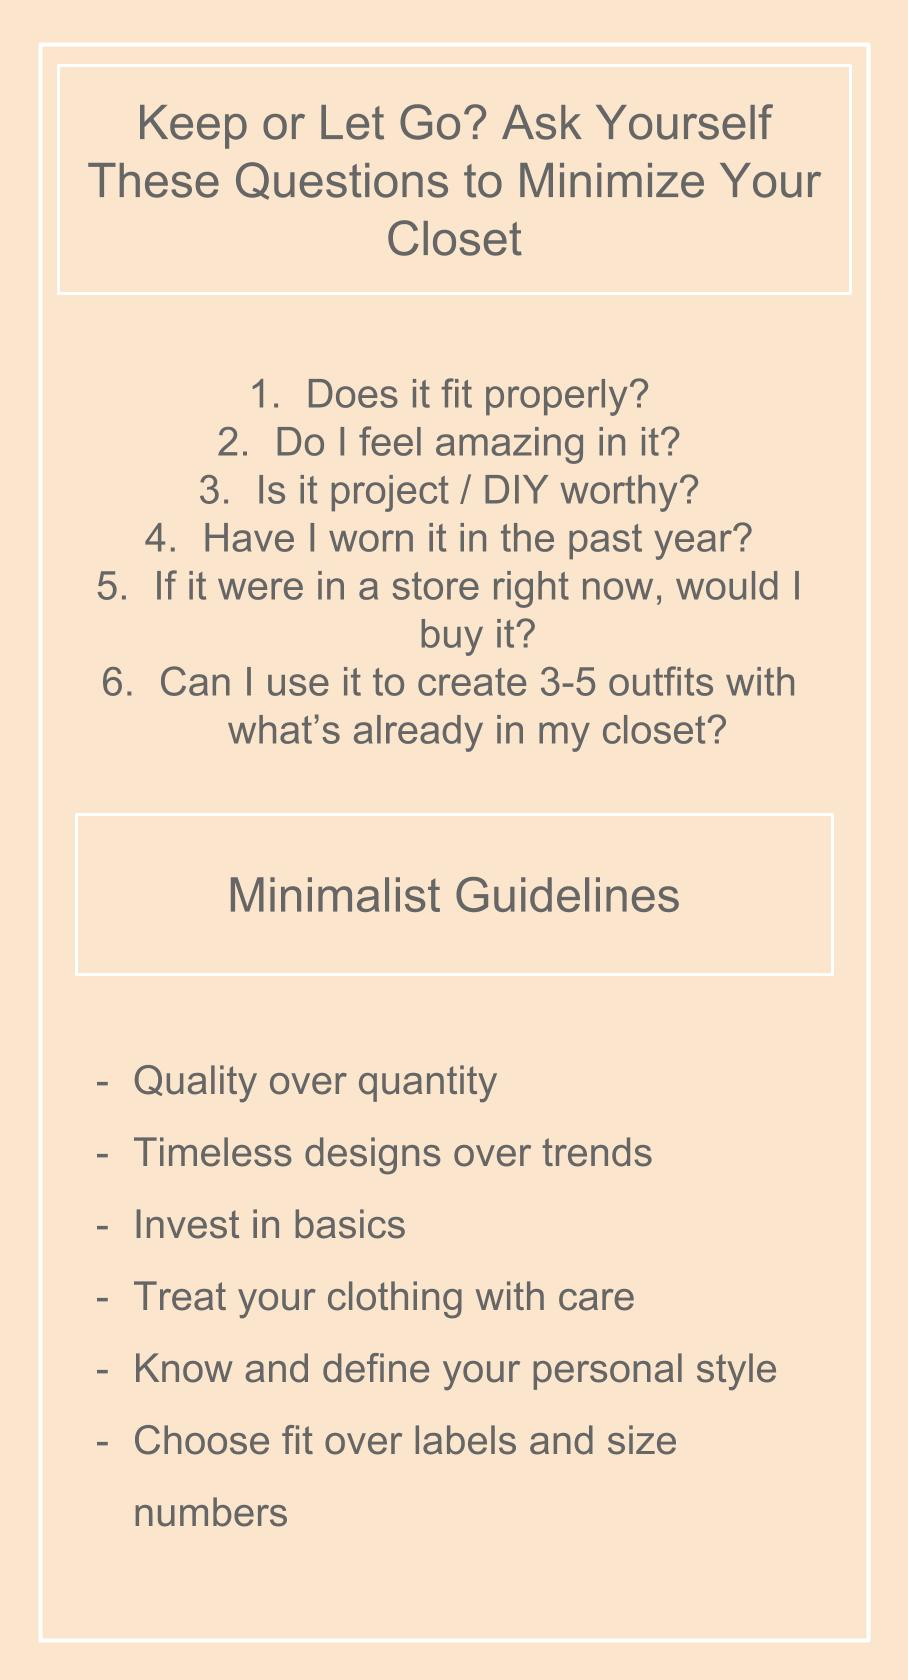 minimalism, minimalist guide, minimalist guideline, how to declutter your closet, how to purge your closet, slow fashion, conscious consumer, sustainable style, sustainable style guide